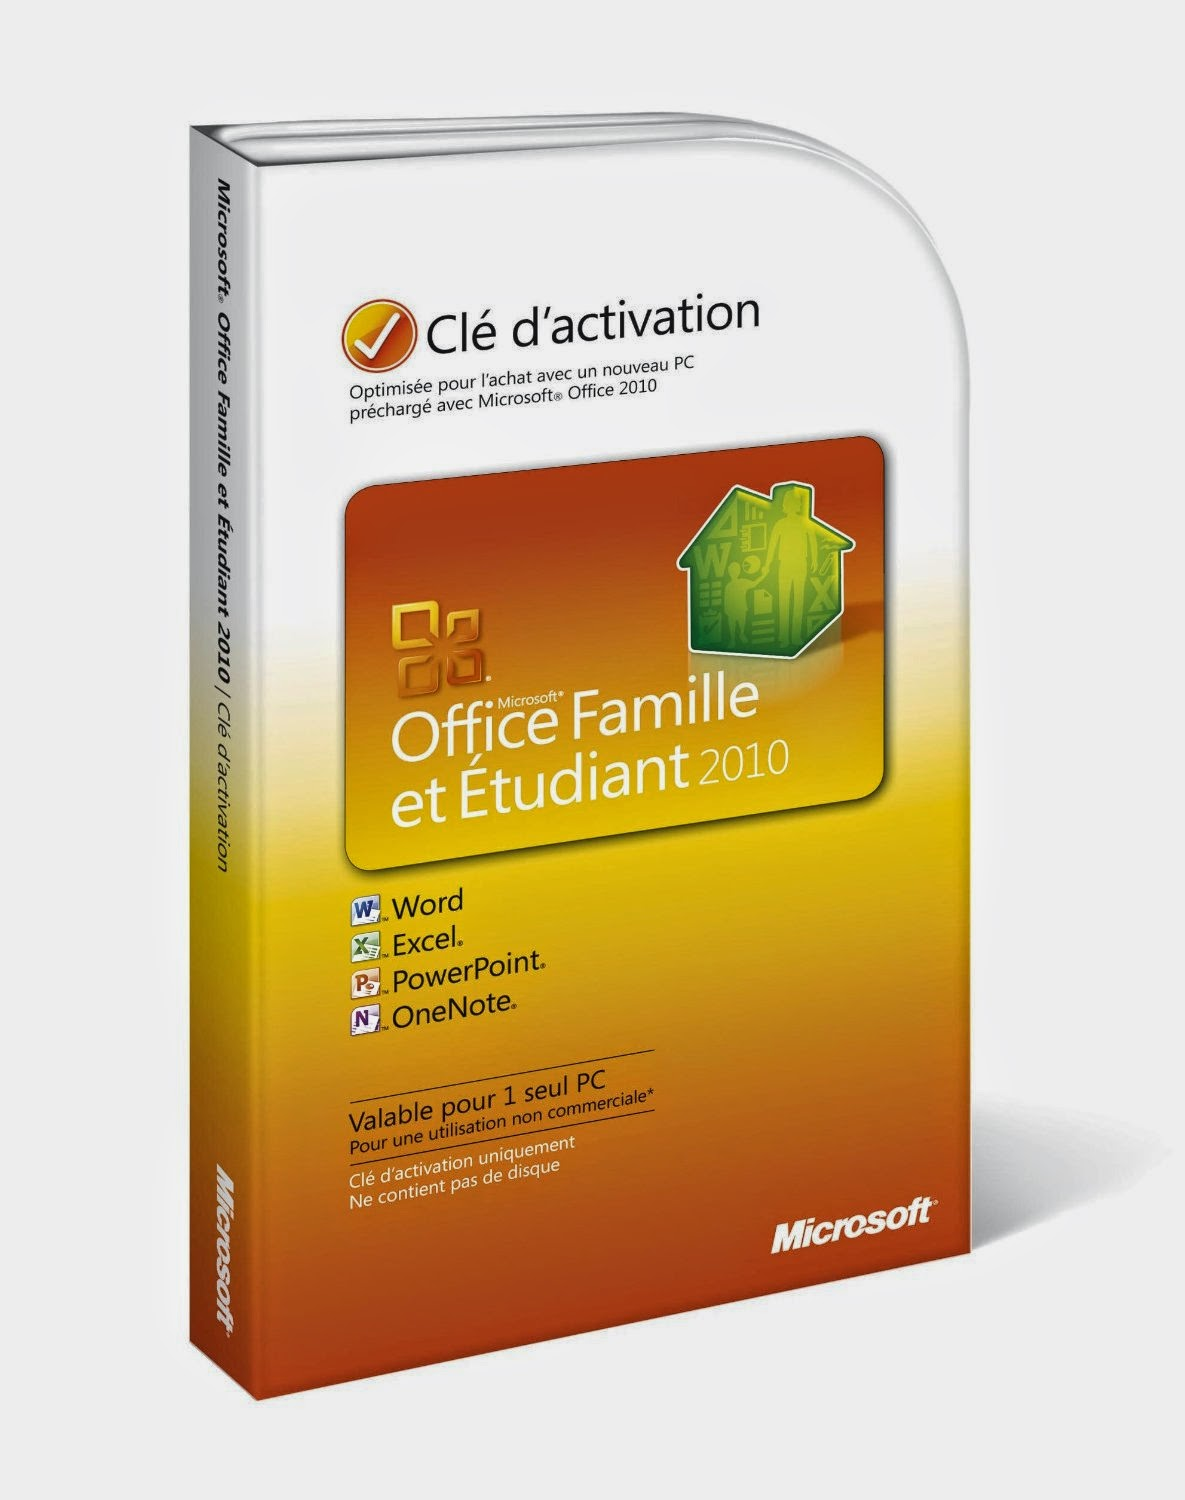 Office 2010 Gratuit A Telecharger Telecharger Crack Pour Office 2010 Gratuit Unaracmi Ga